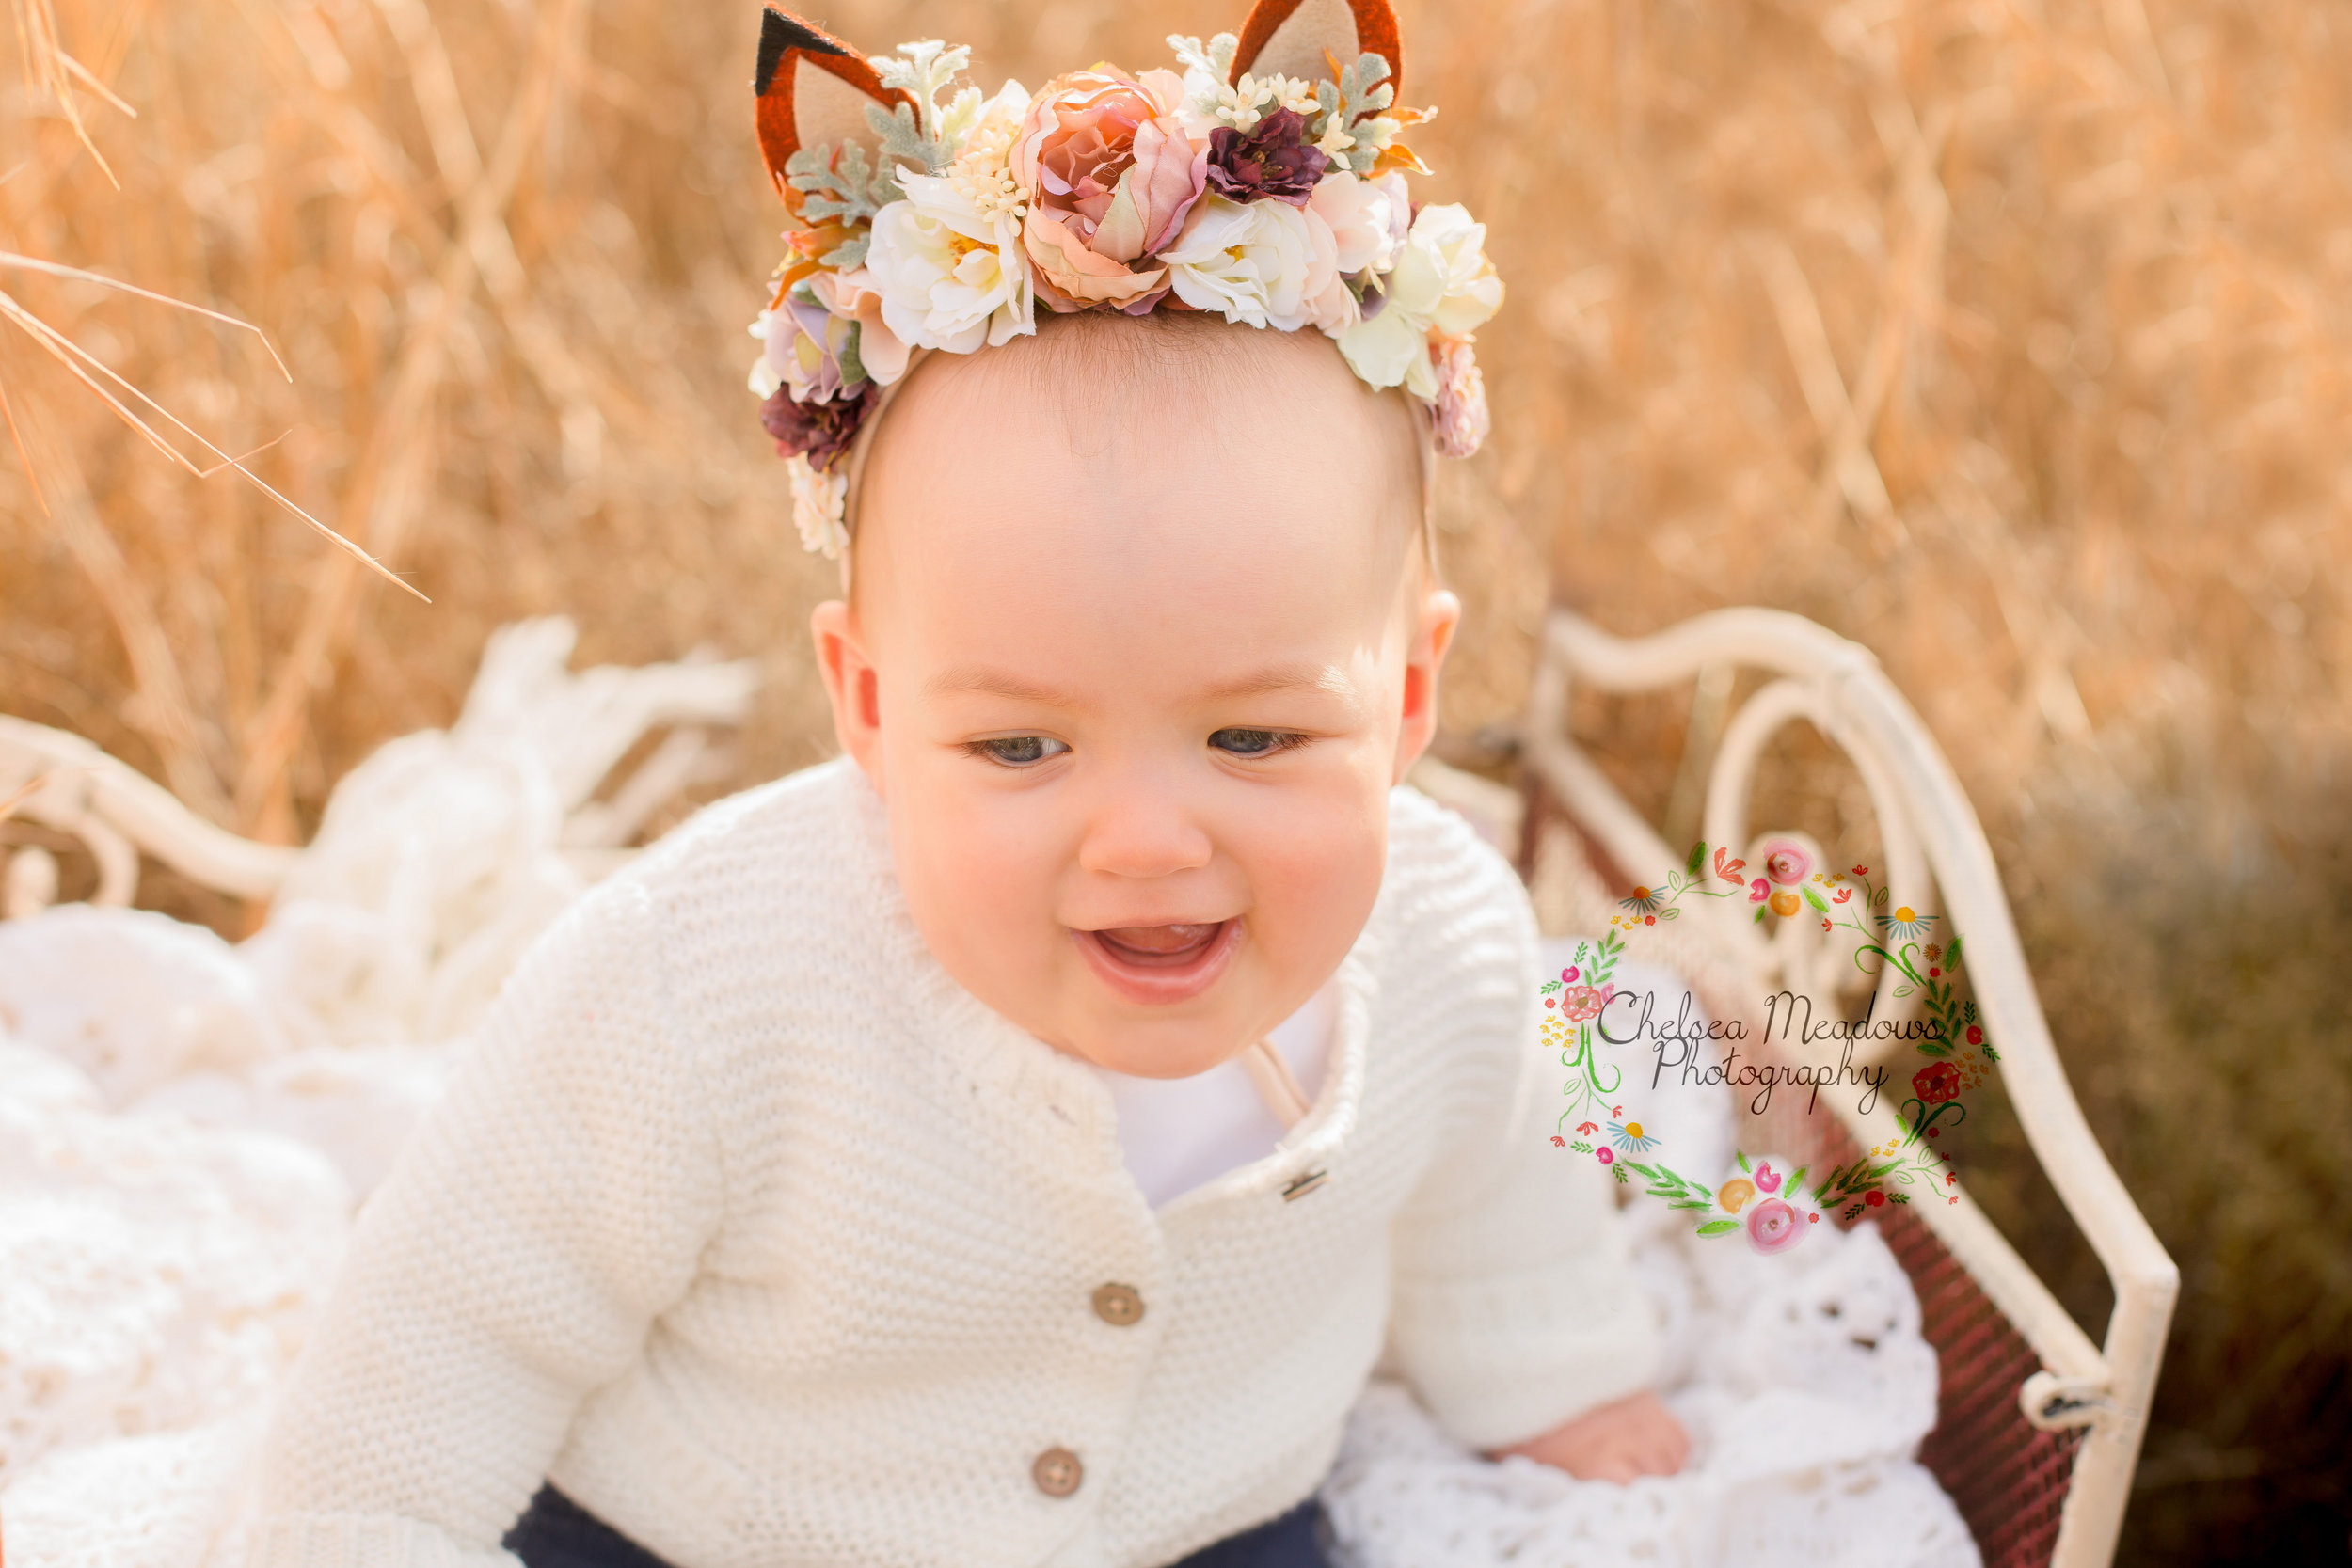 Phina 6 Month Session - Nashville Family Photographer - Chelsea Meadows Photography (29).jpg